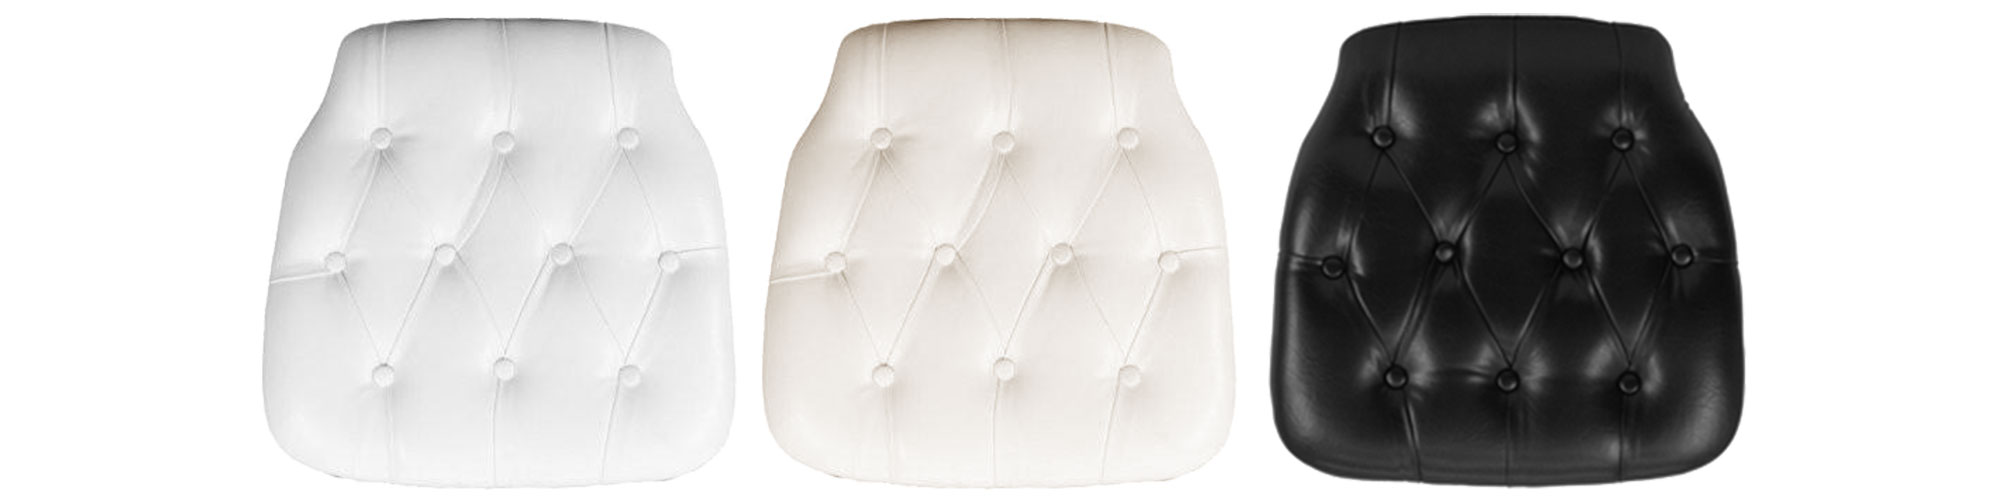 Tufted Chiavari Chair Pads